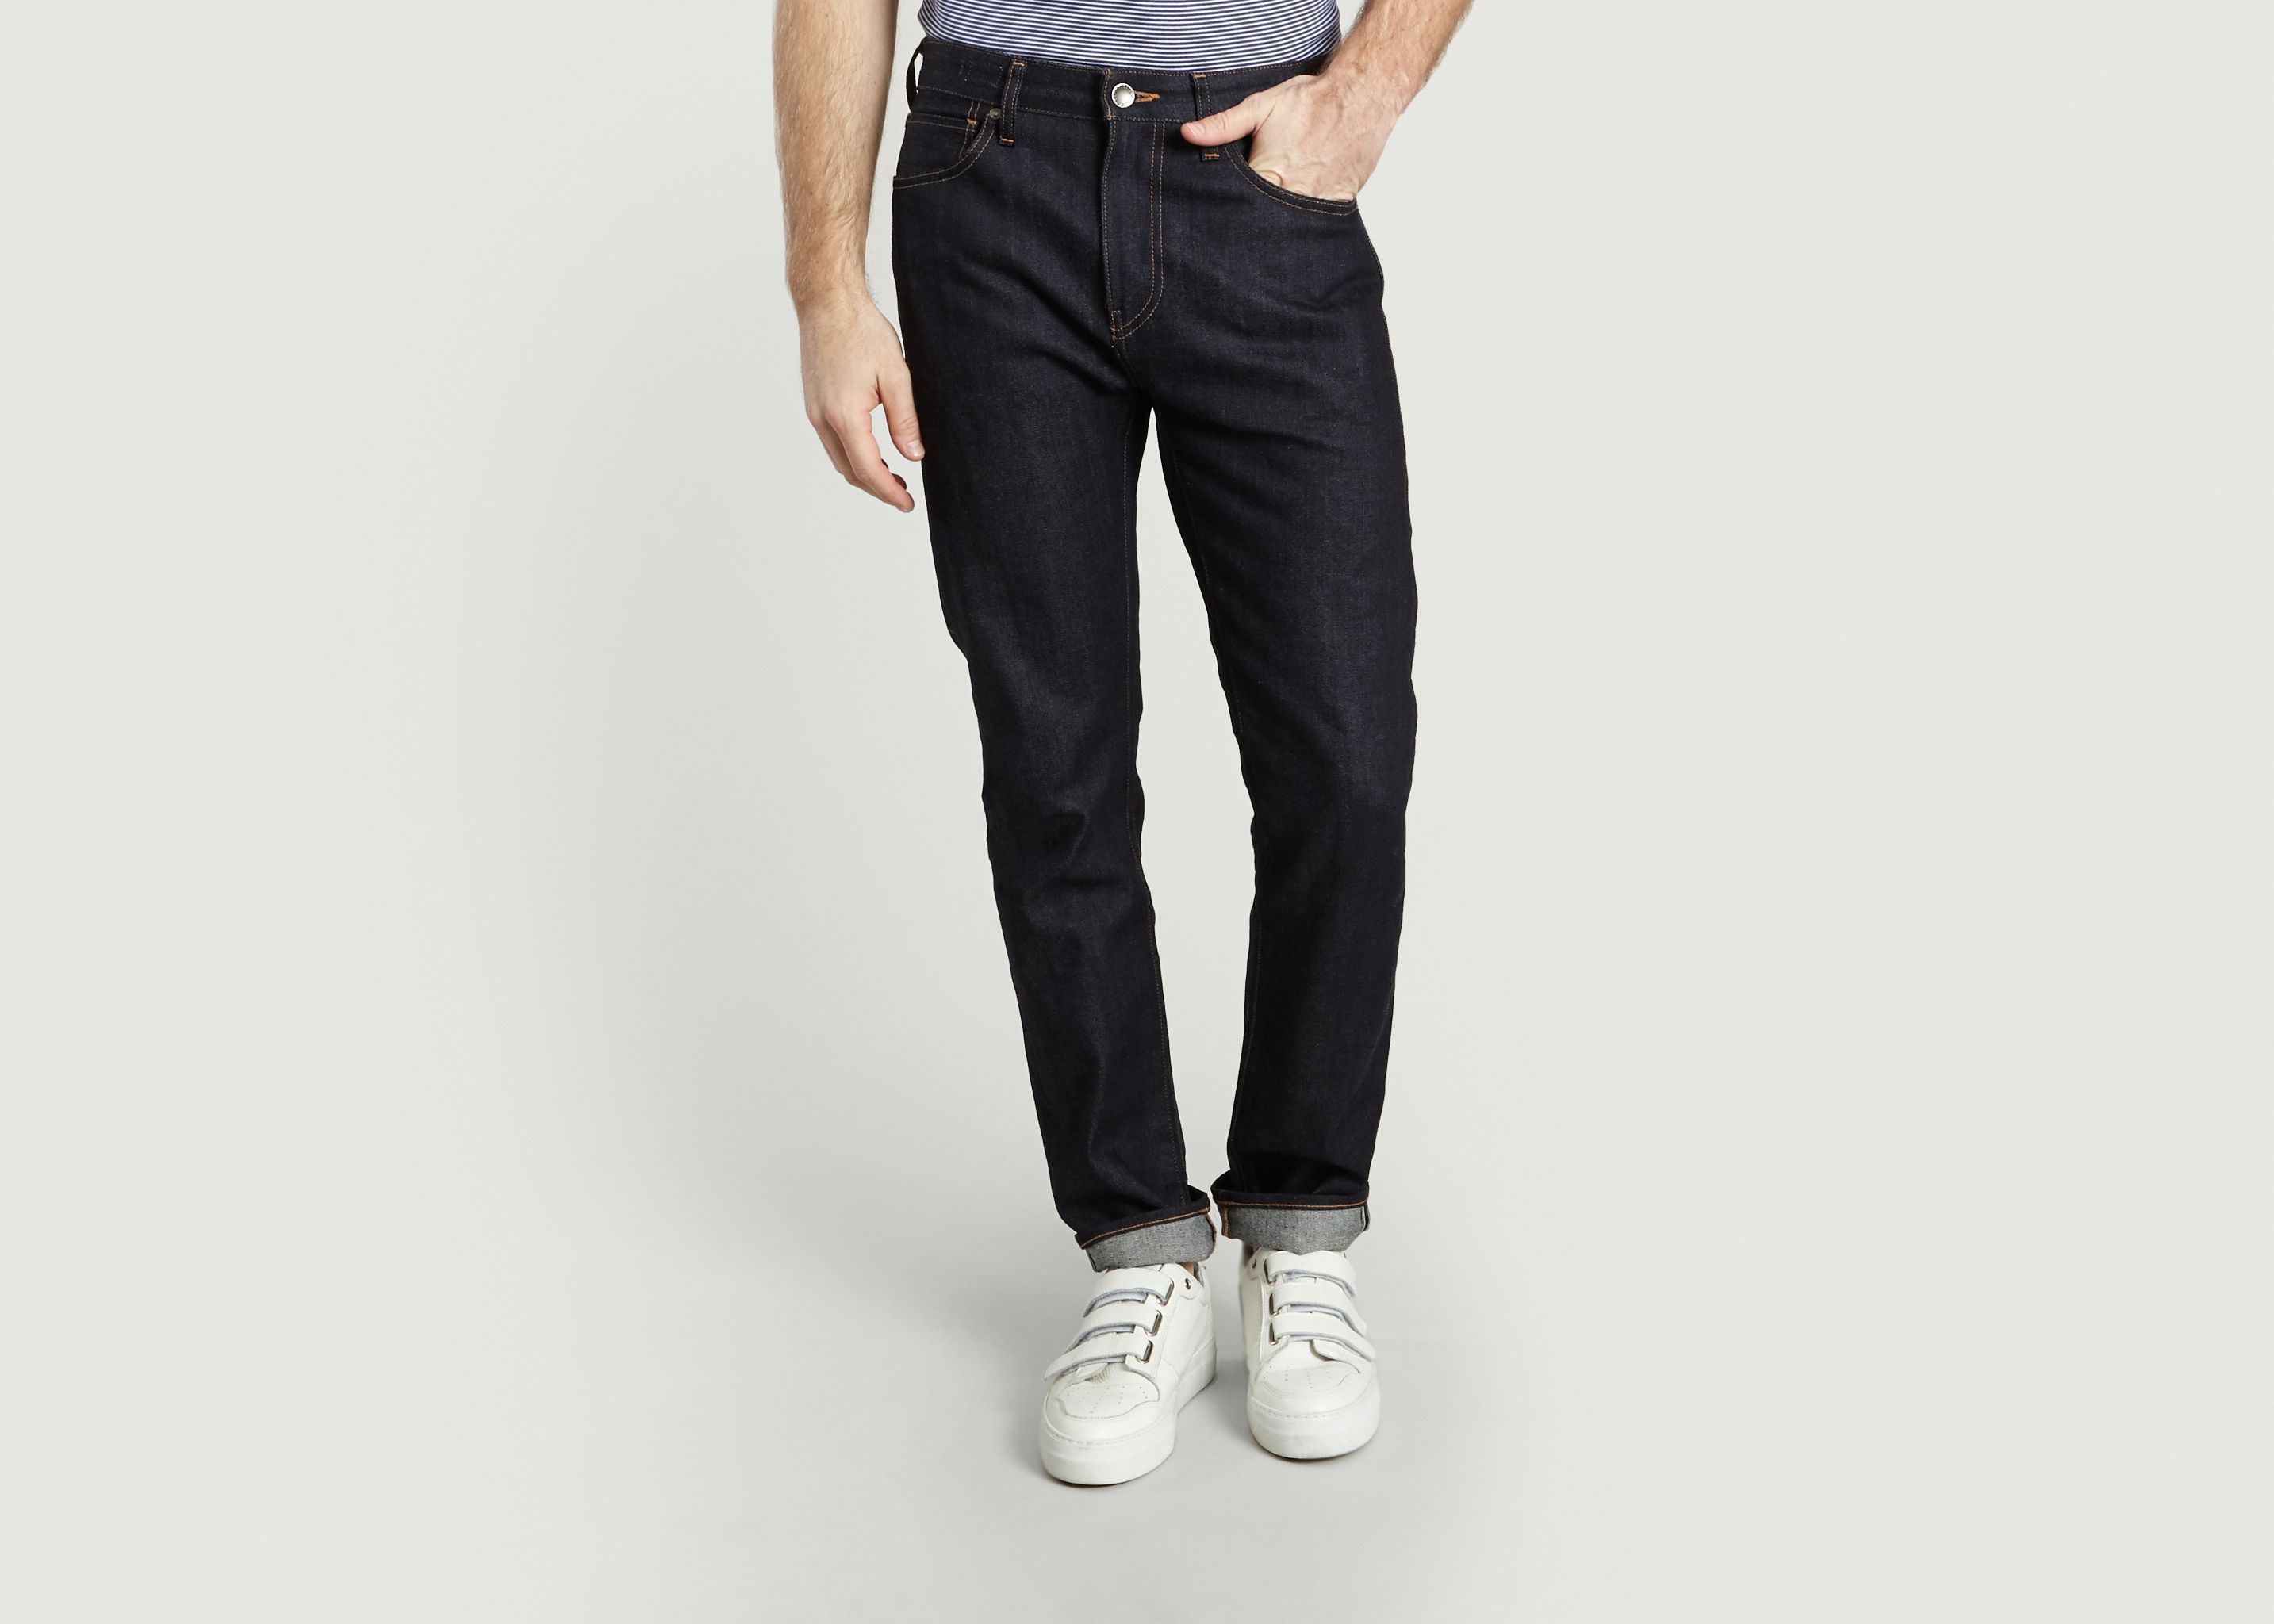 61a6ce8d Slim Tack Selvedge Jeans Raw Levi's Made and Crafted | L'Exception